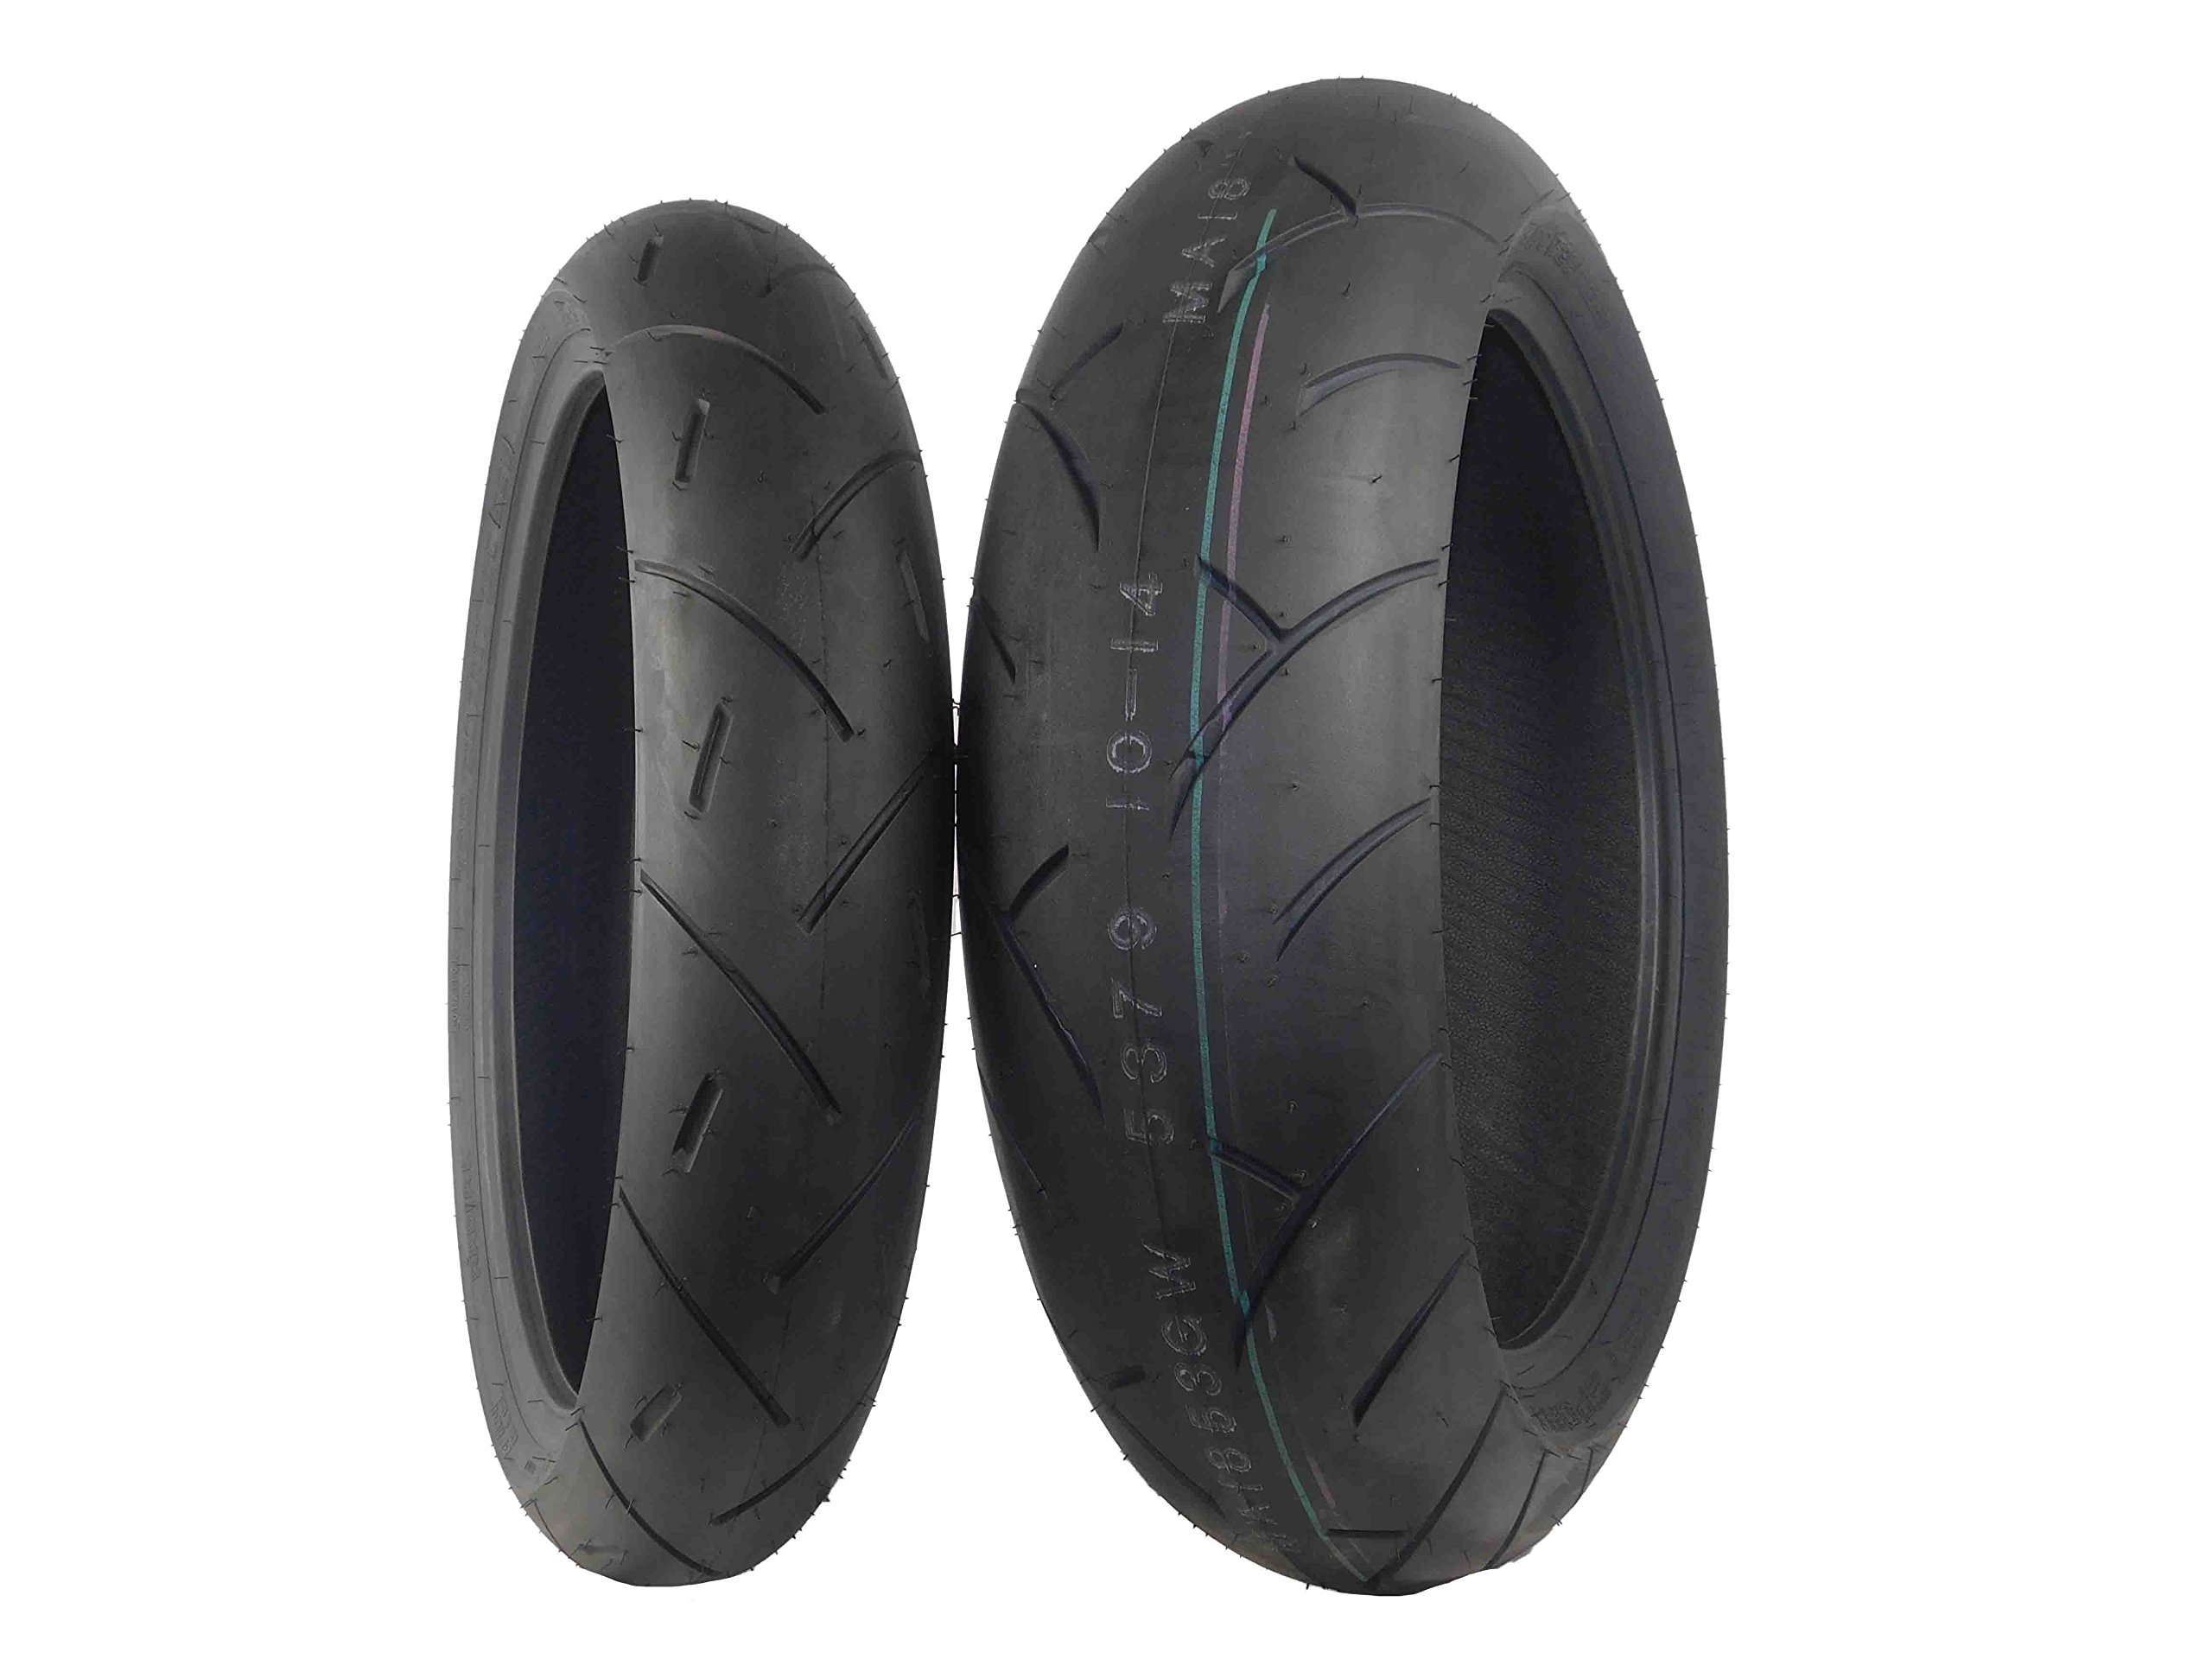 Full Bore M1 Tire Set (1 Front 120/60ZR17 & 1 Rear 180/55ZR17) 120/60-17 180/55-17 Pair